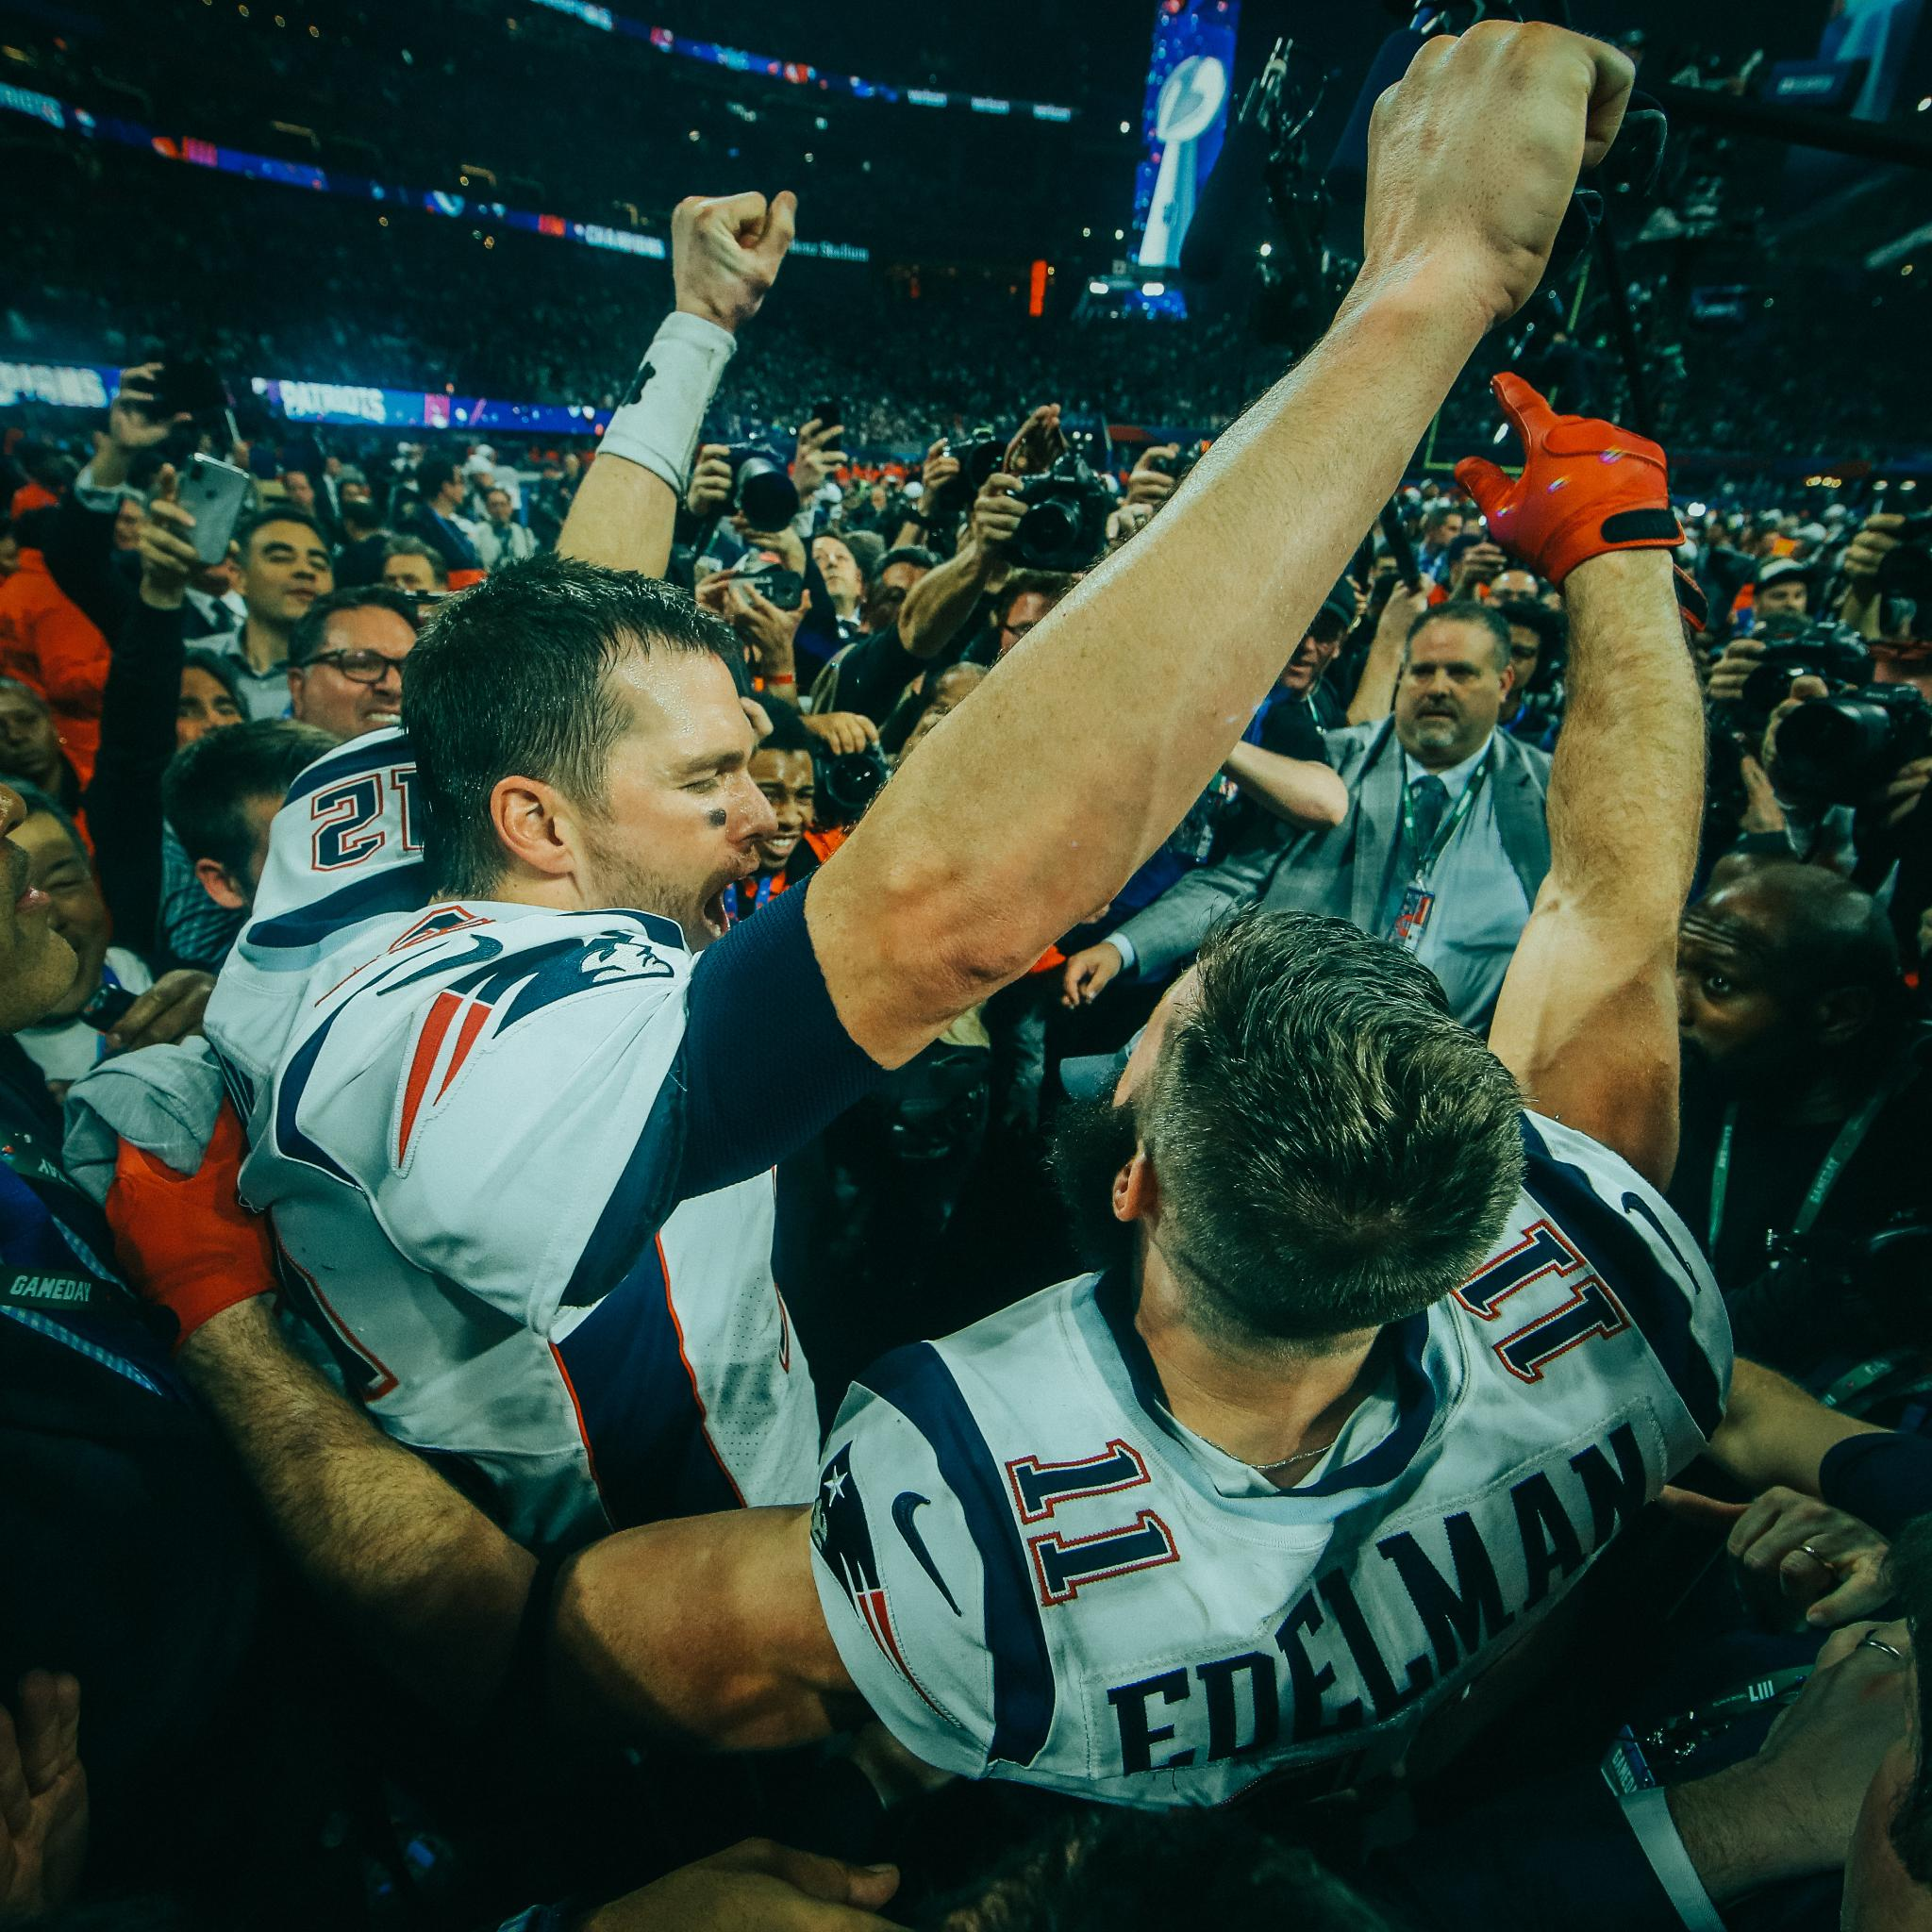 One week ago. �� #SBLIII https://t.co/pCmjbFzrTP